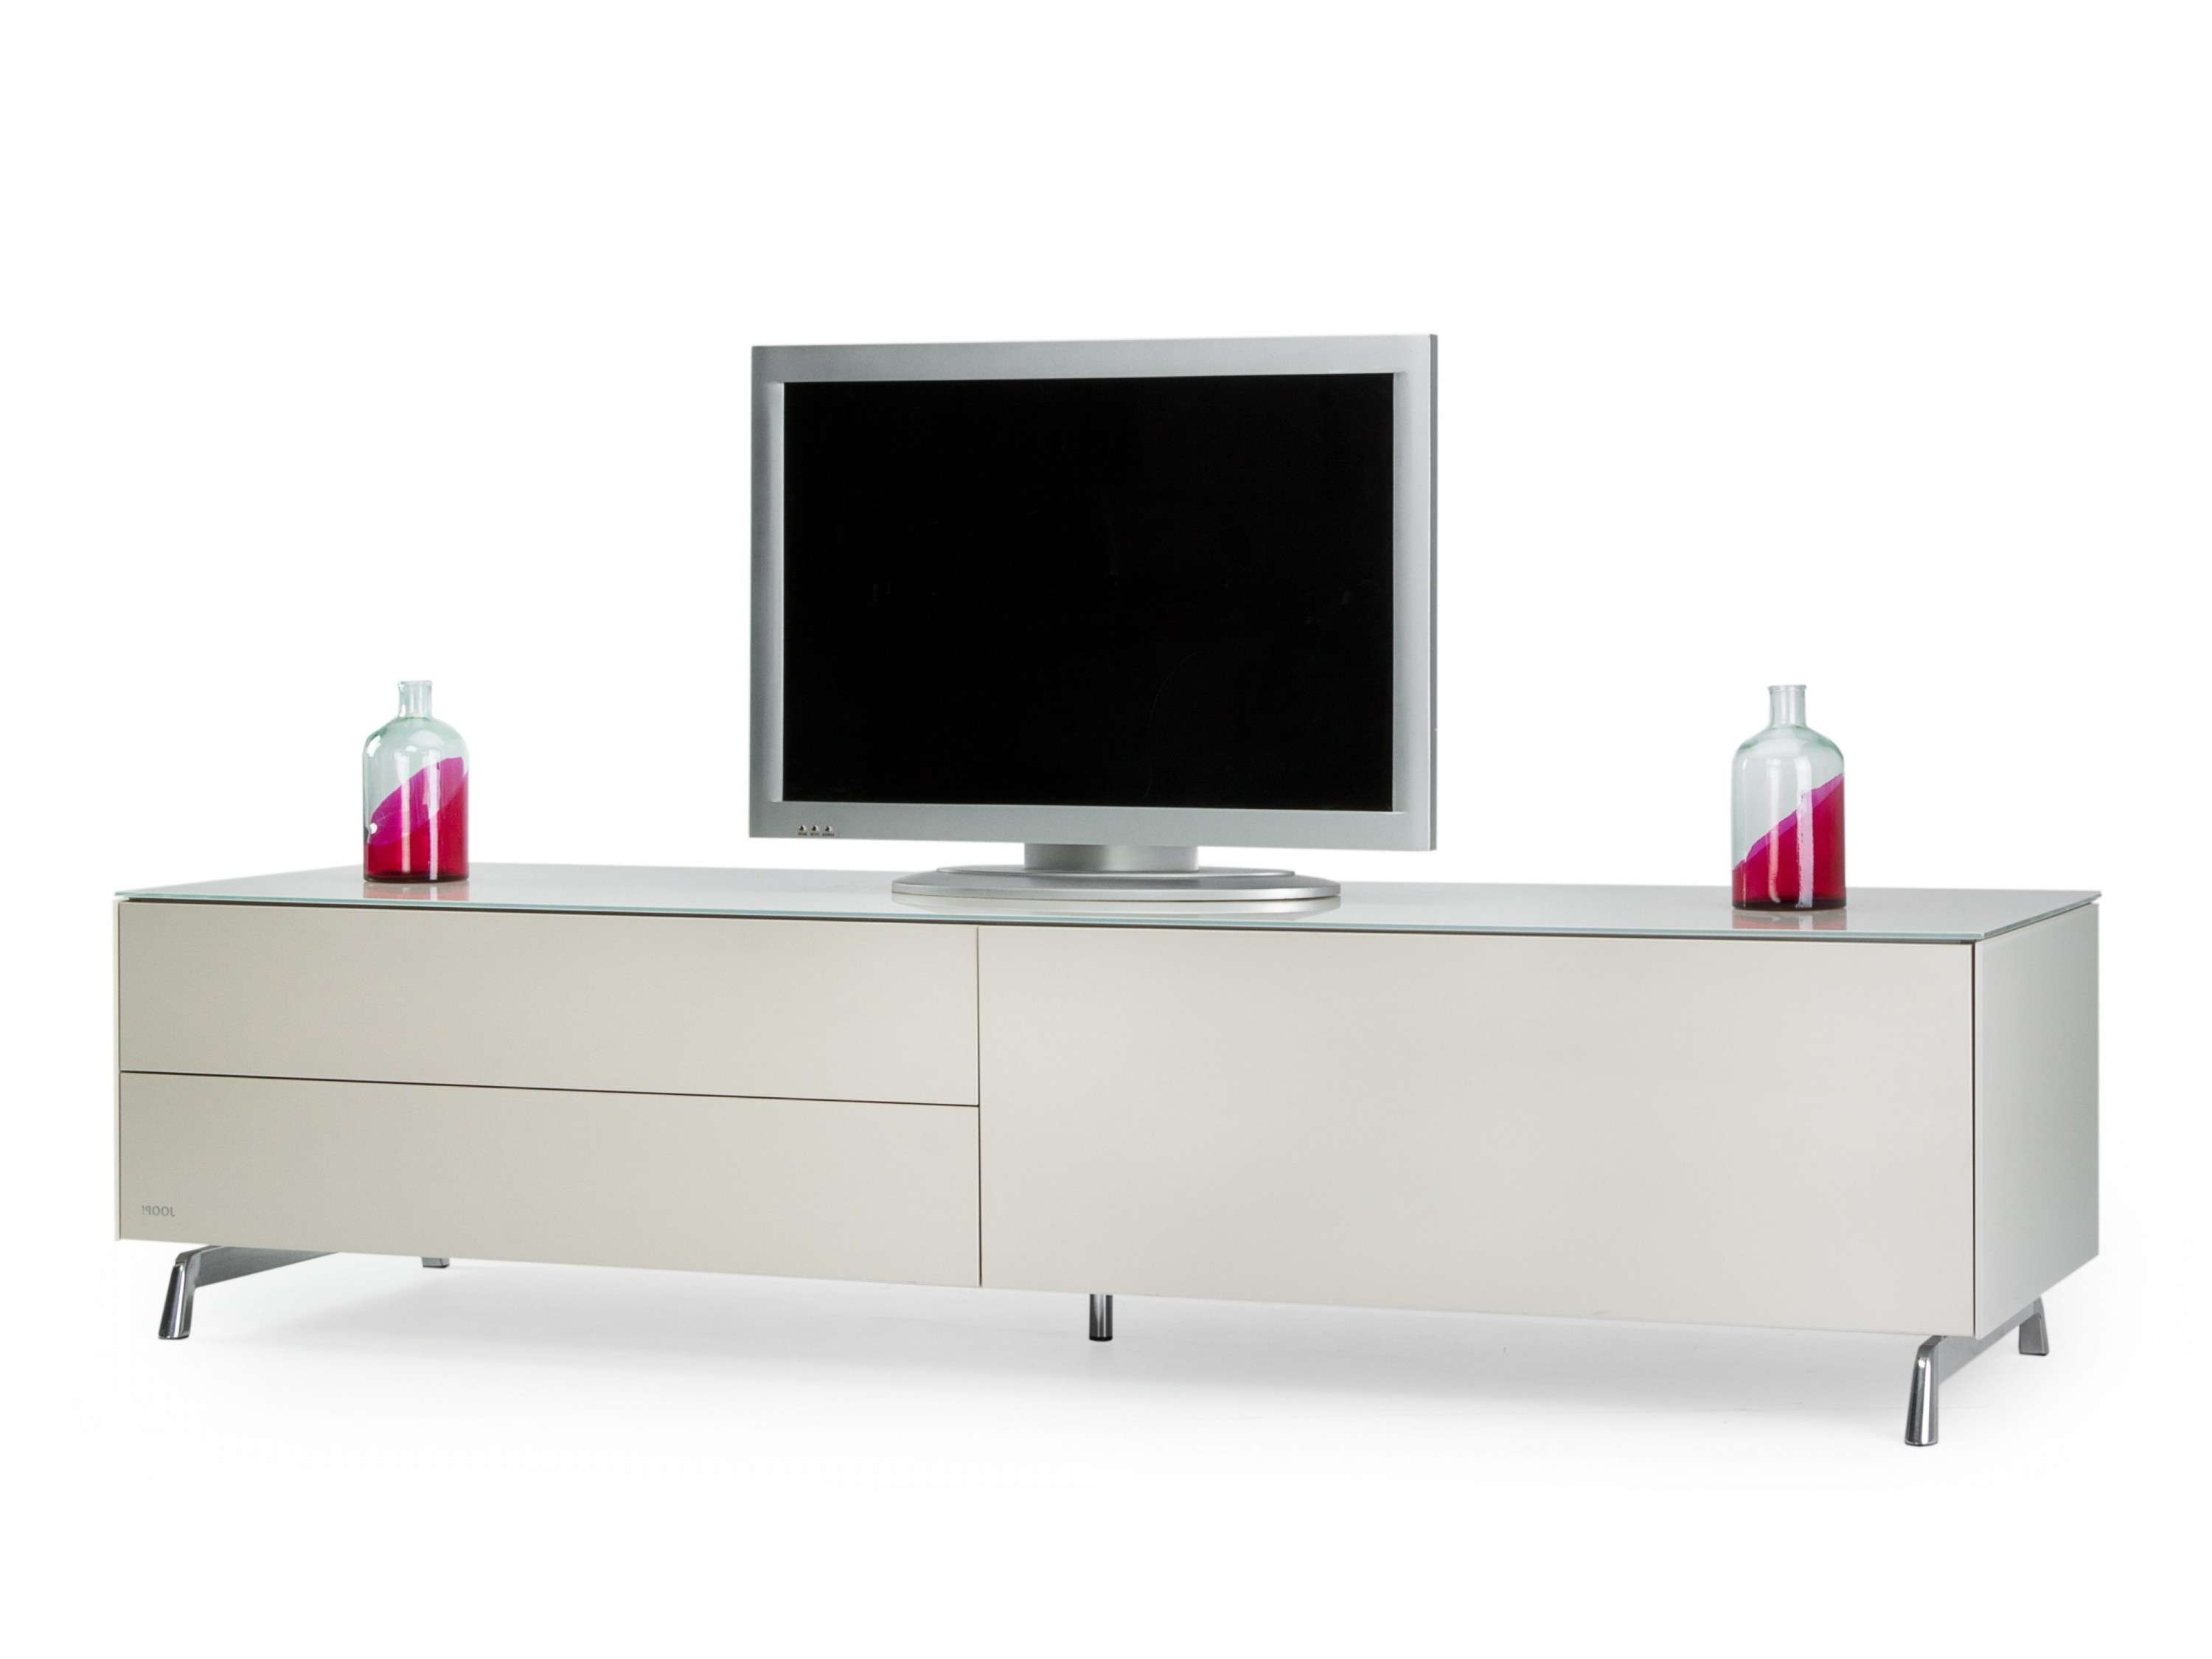 Lowboard Joop! Loft Von Joop! Und Schr?nke & Regale G?nstig Online Within Joop Sideboards (View 12 of 20)